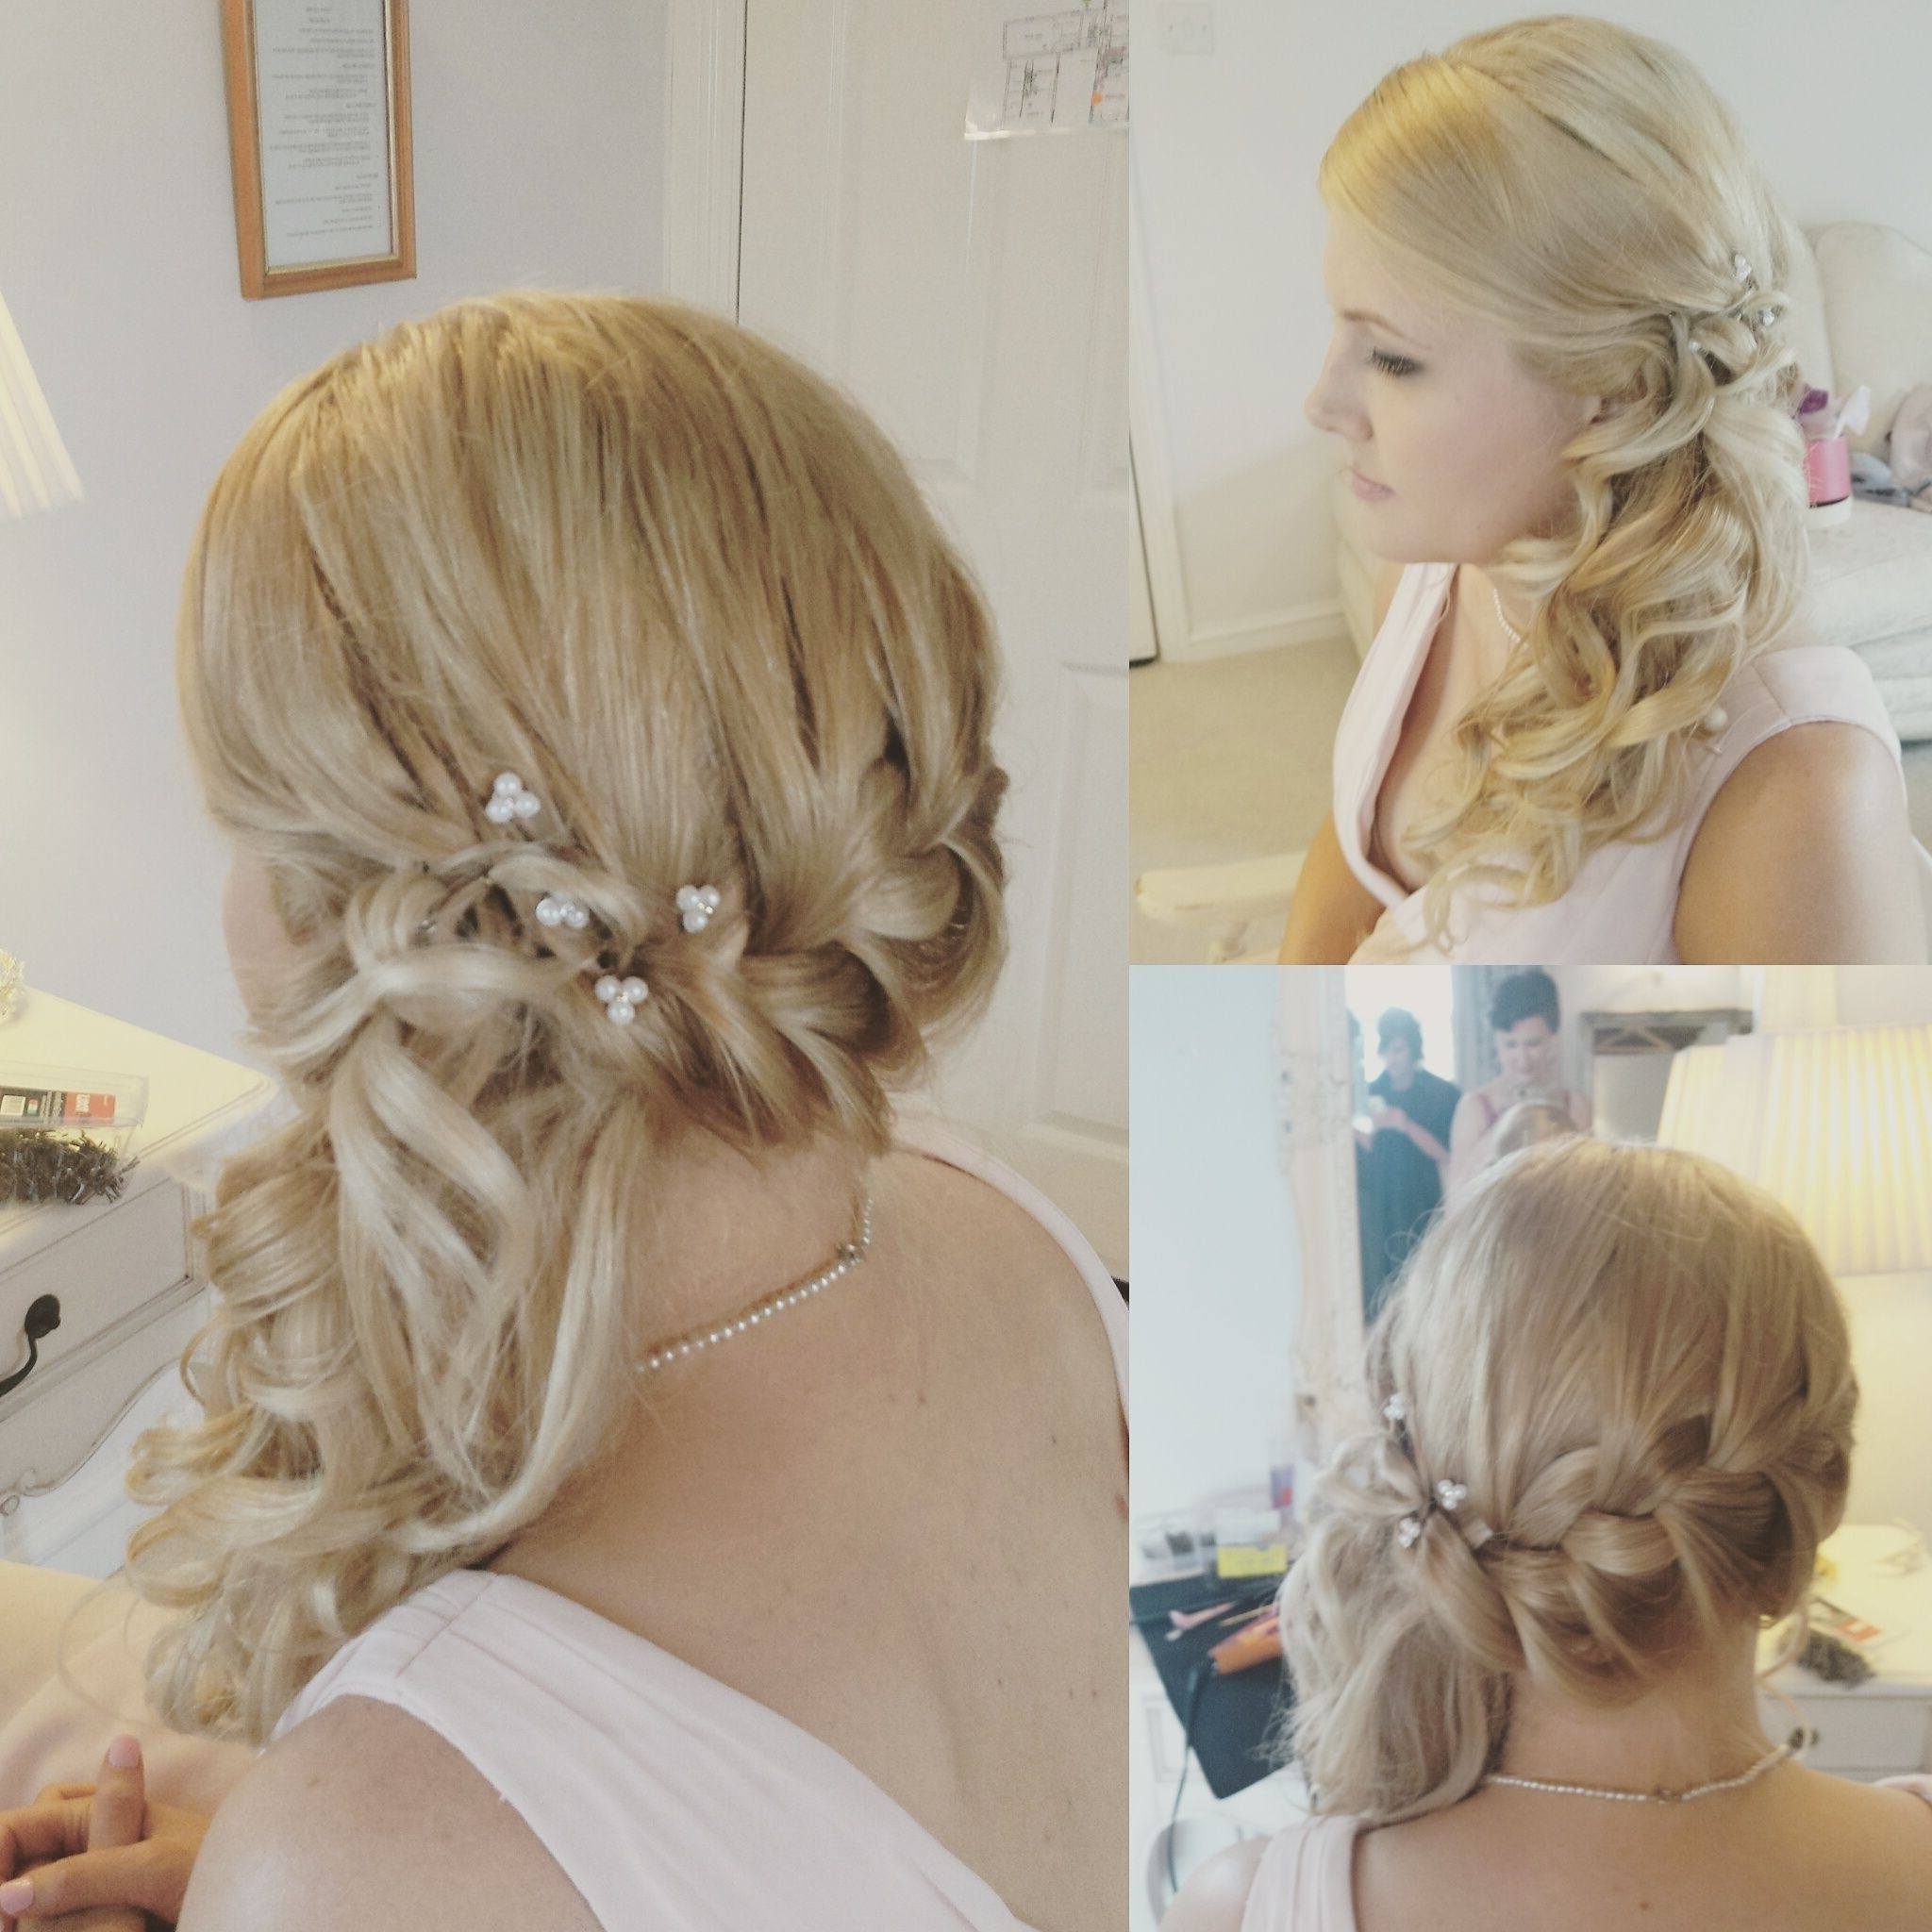 2018 Loosey Goosey Ponytail Hairstyles Within Plaits And Curls Bridal Hair Look. Norwich (View 1 of 20)